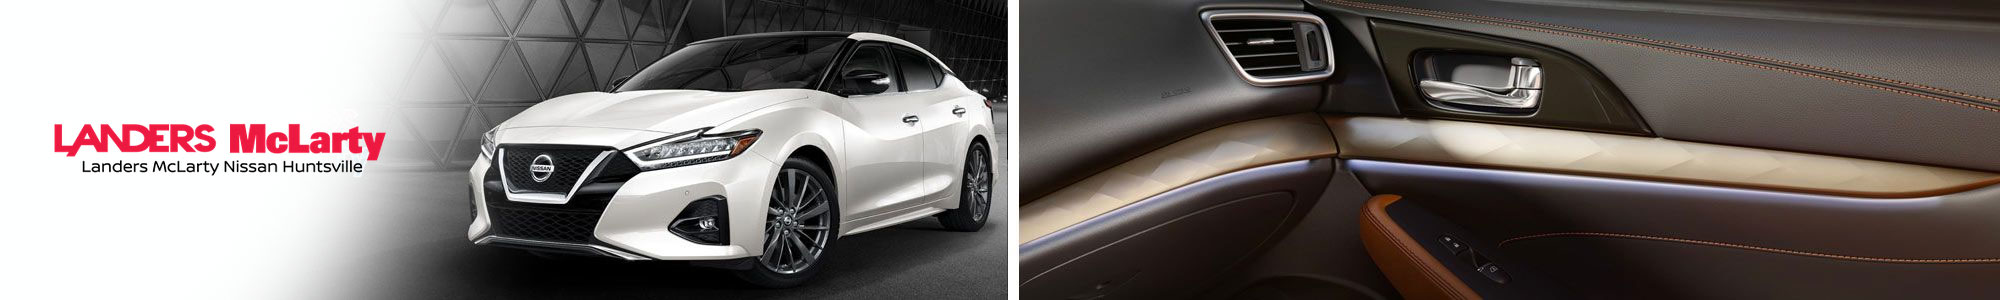 Research the 2019 Nissan Maxima at Landers McLarty Nissan in Huntsville AL